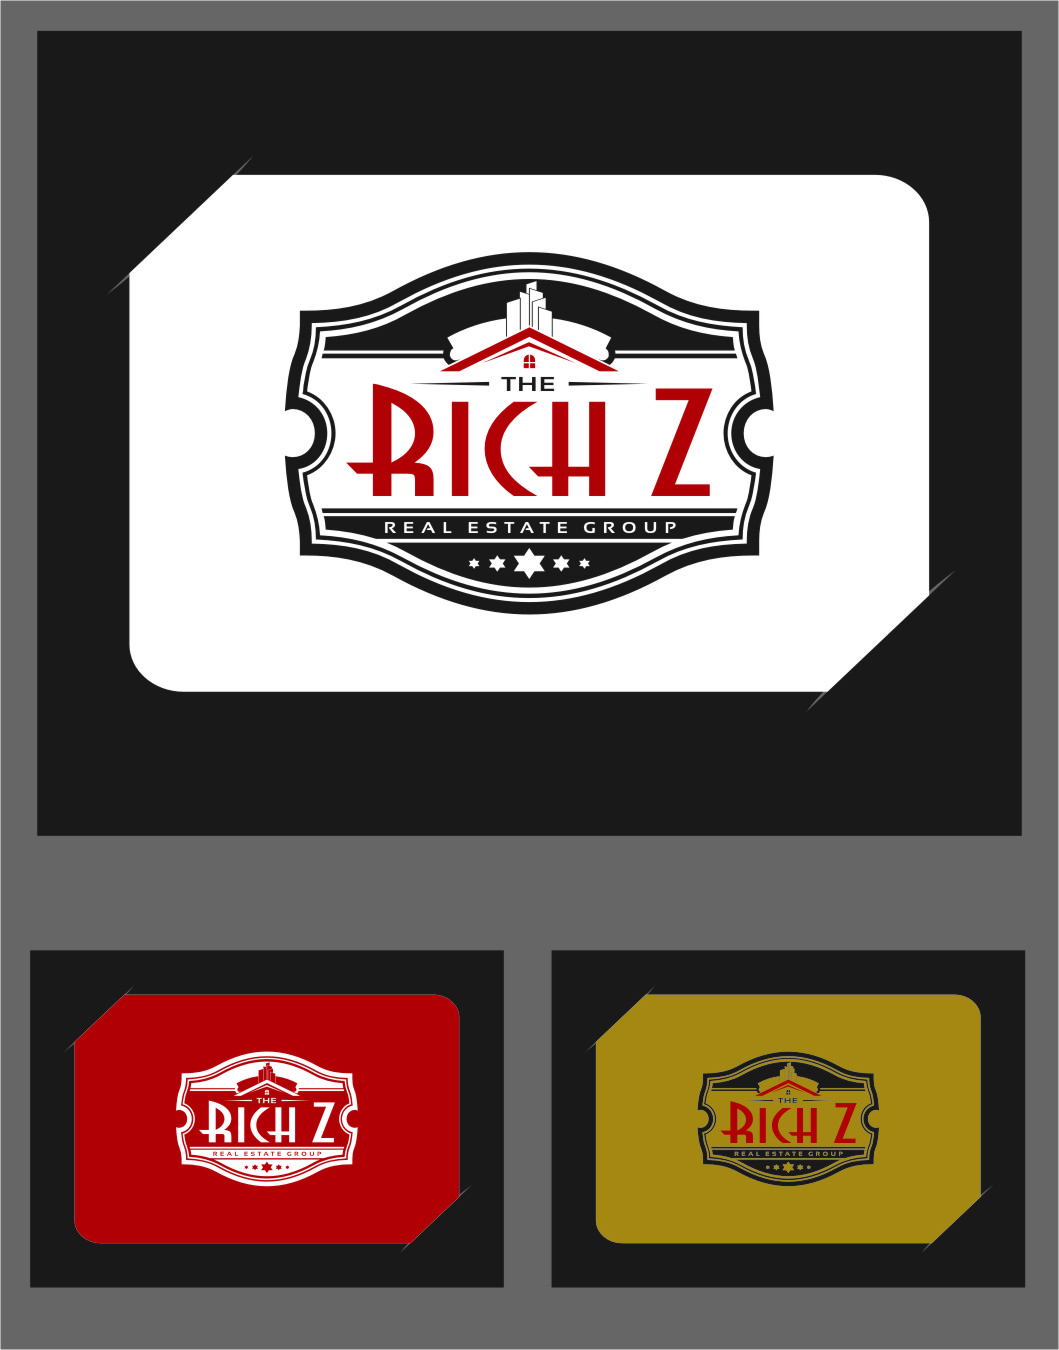 Logo Design by Ngepet_art - Entry No. 267 in the Logo Design Contest The Rich Z. Real Estate Group Logo Design.